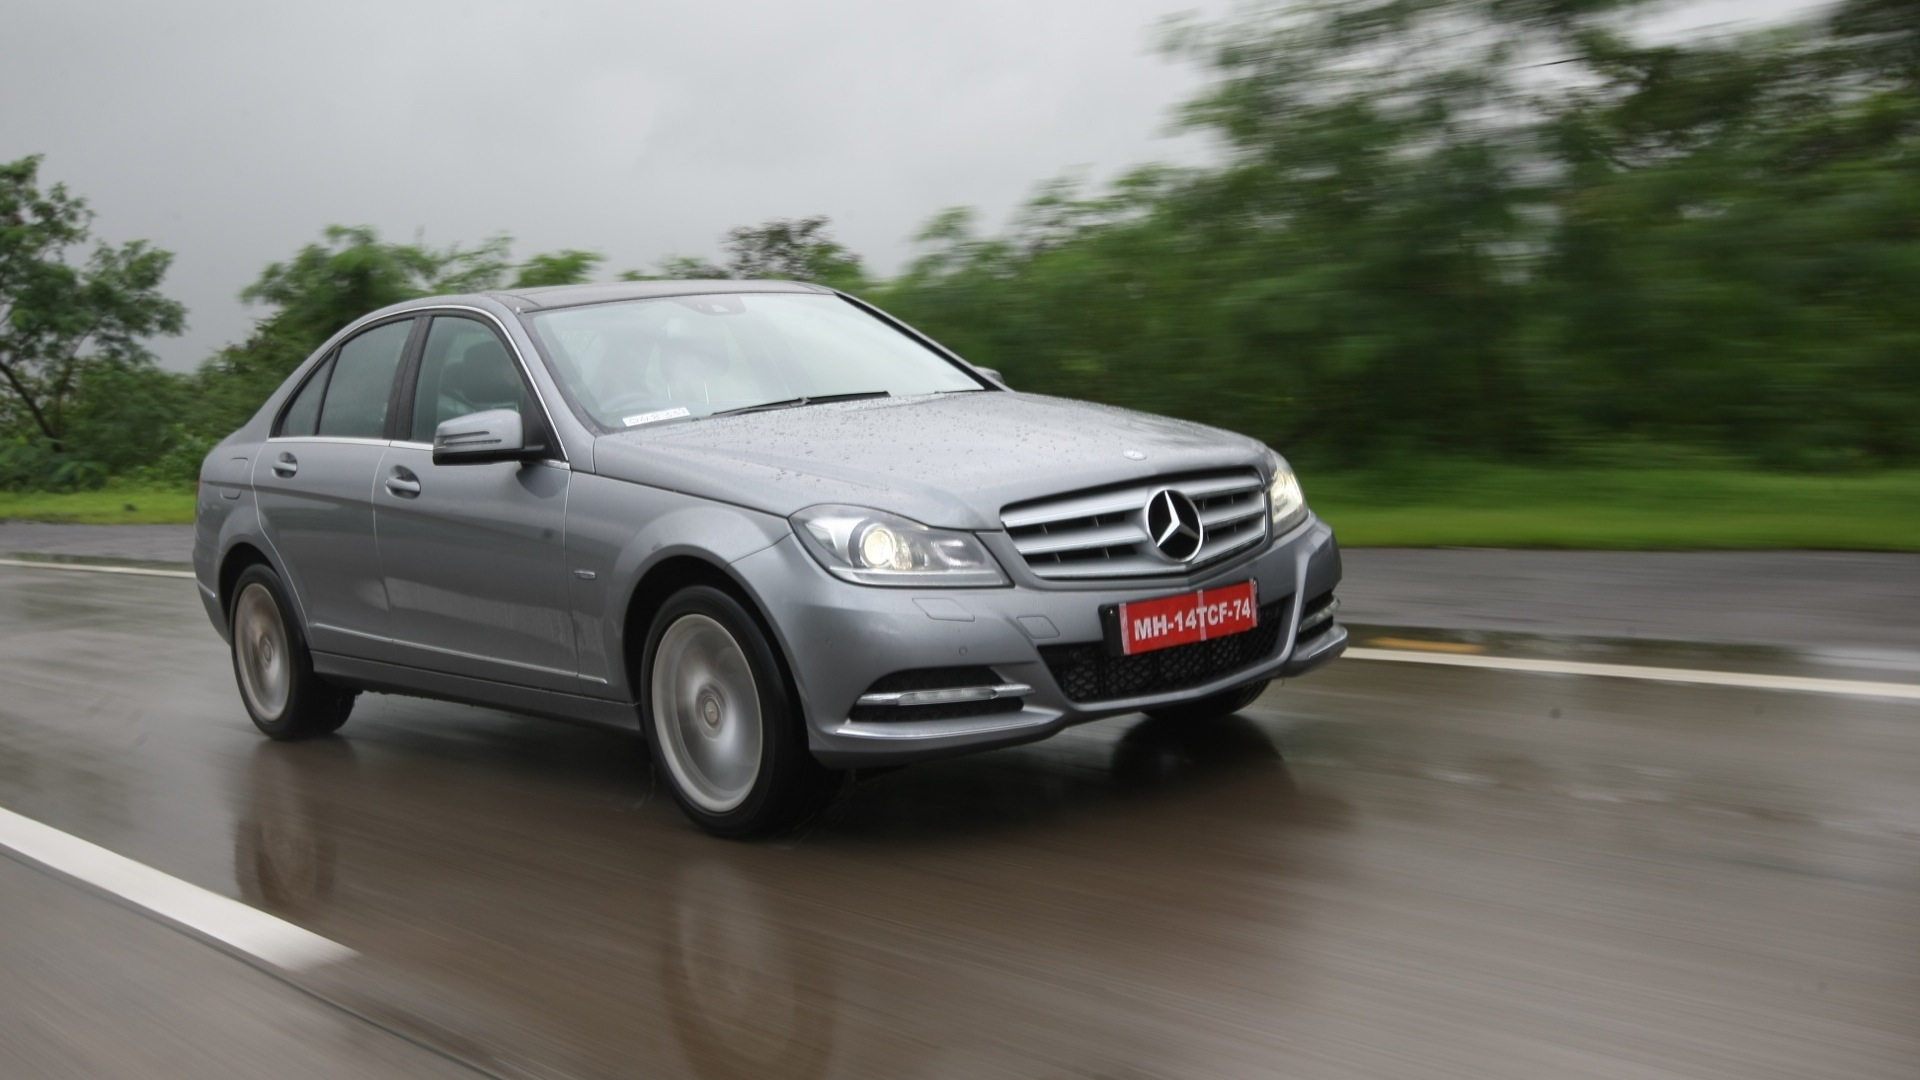 Mercedes benz c class 2016 price mileage reviews for Mercedes benz mileage